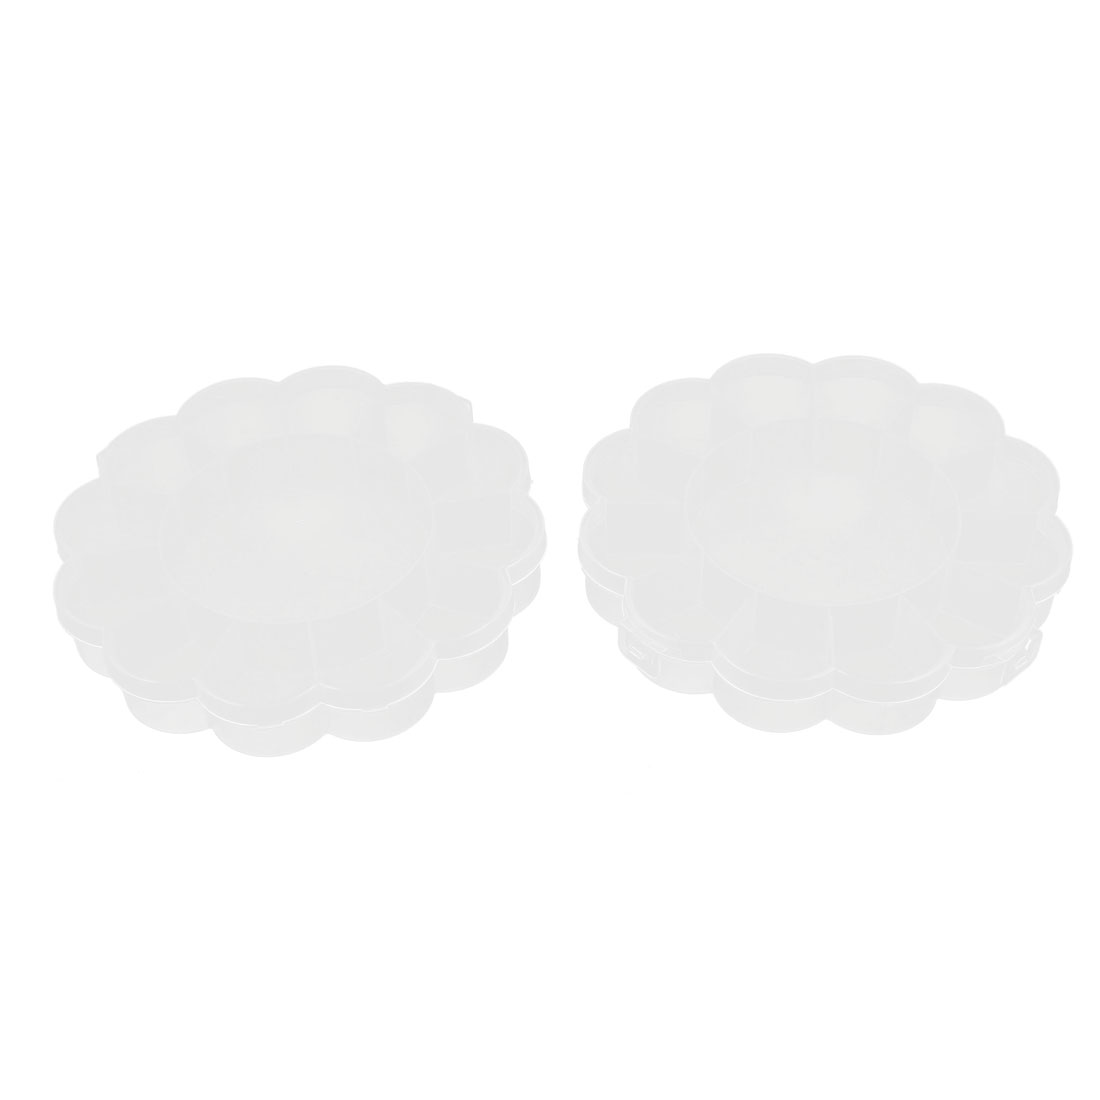 Jewelry Bead Pill Collection Floral Design Storage Box Container Clear 2pcs